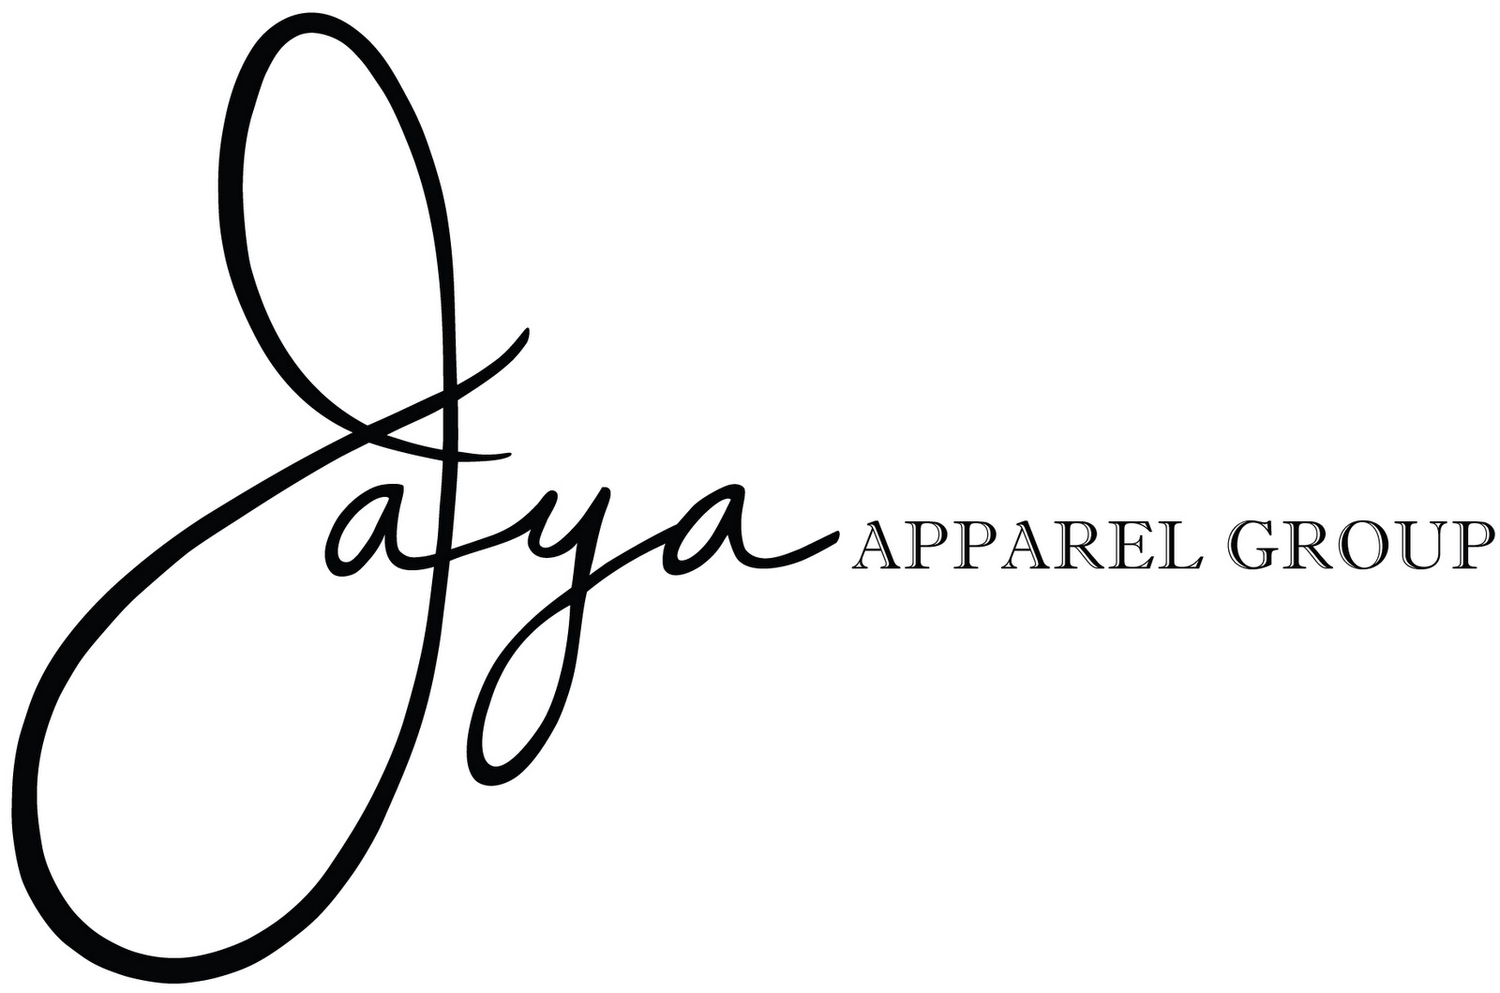 Jaya Apparel Group, LLC